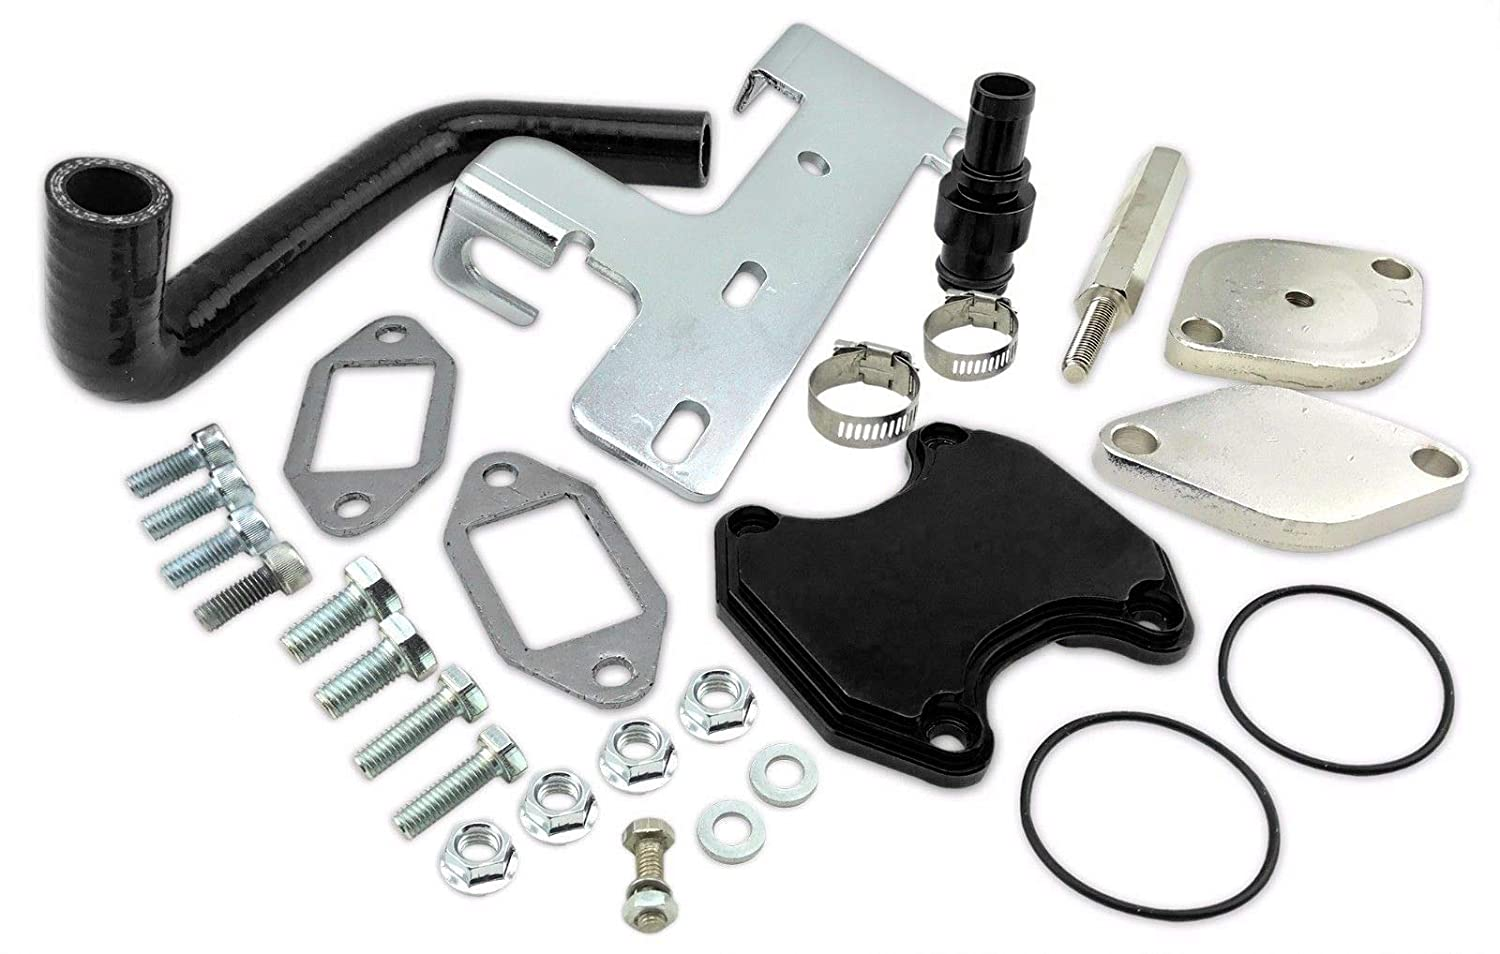 EGR Valve Cooler Delete Kit For 2010-14 Dodge Ram 2500 3500 6.7L Cummins Diesel